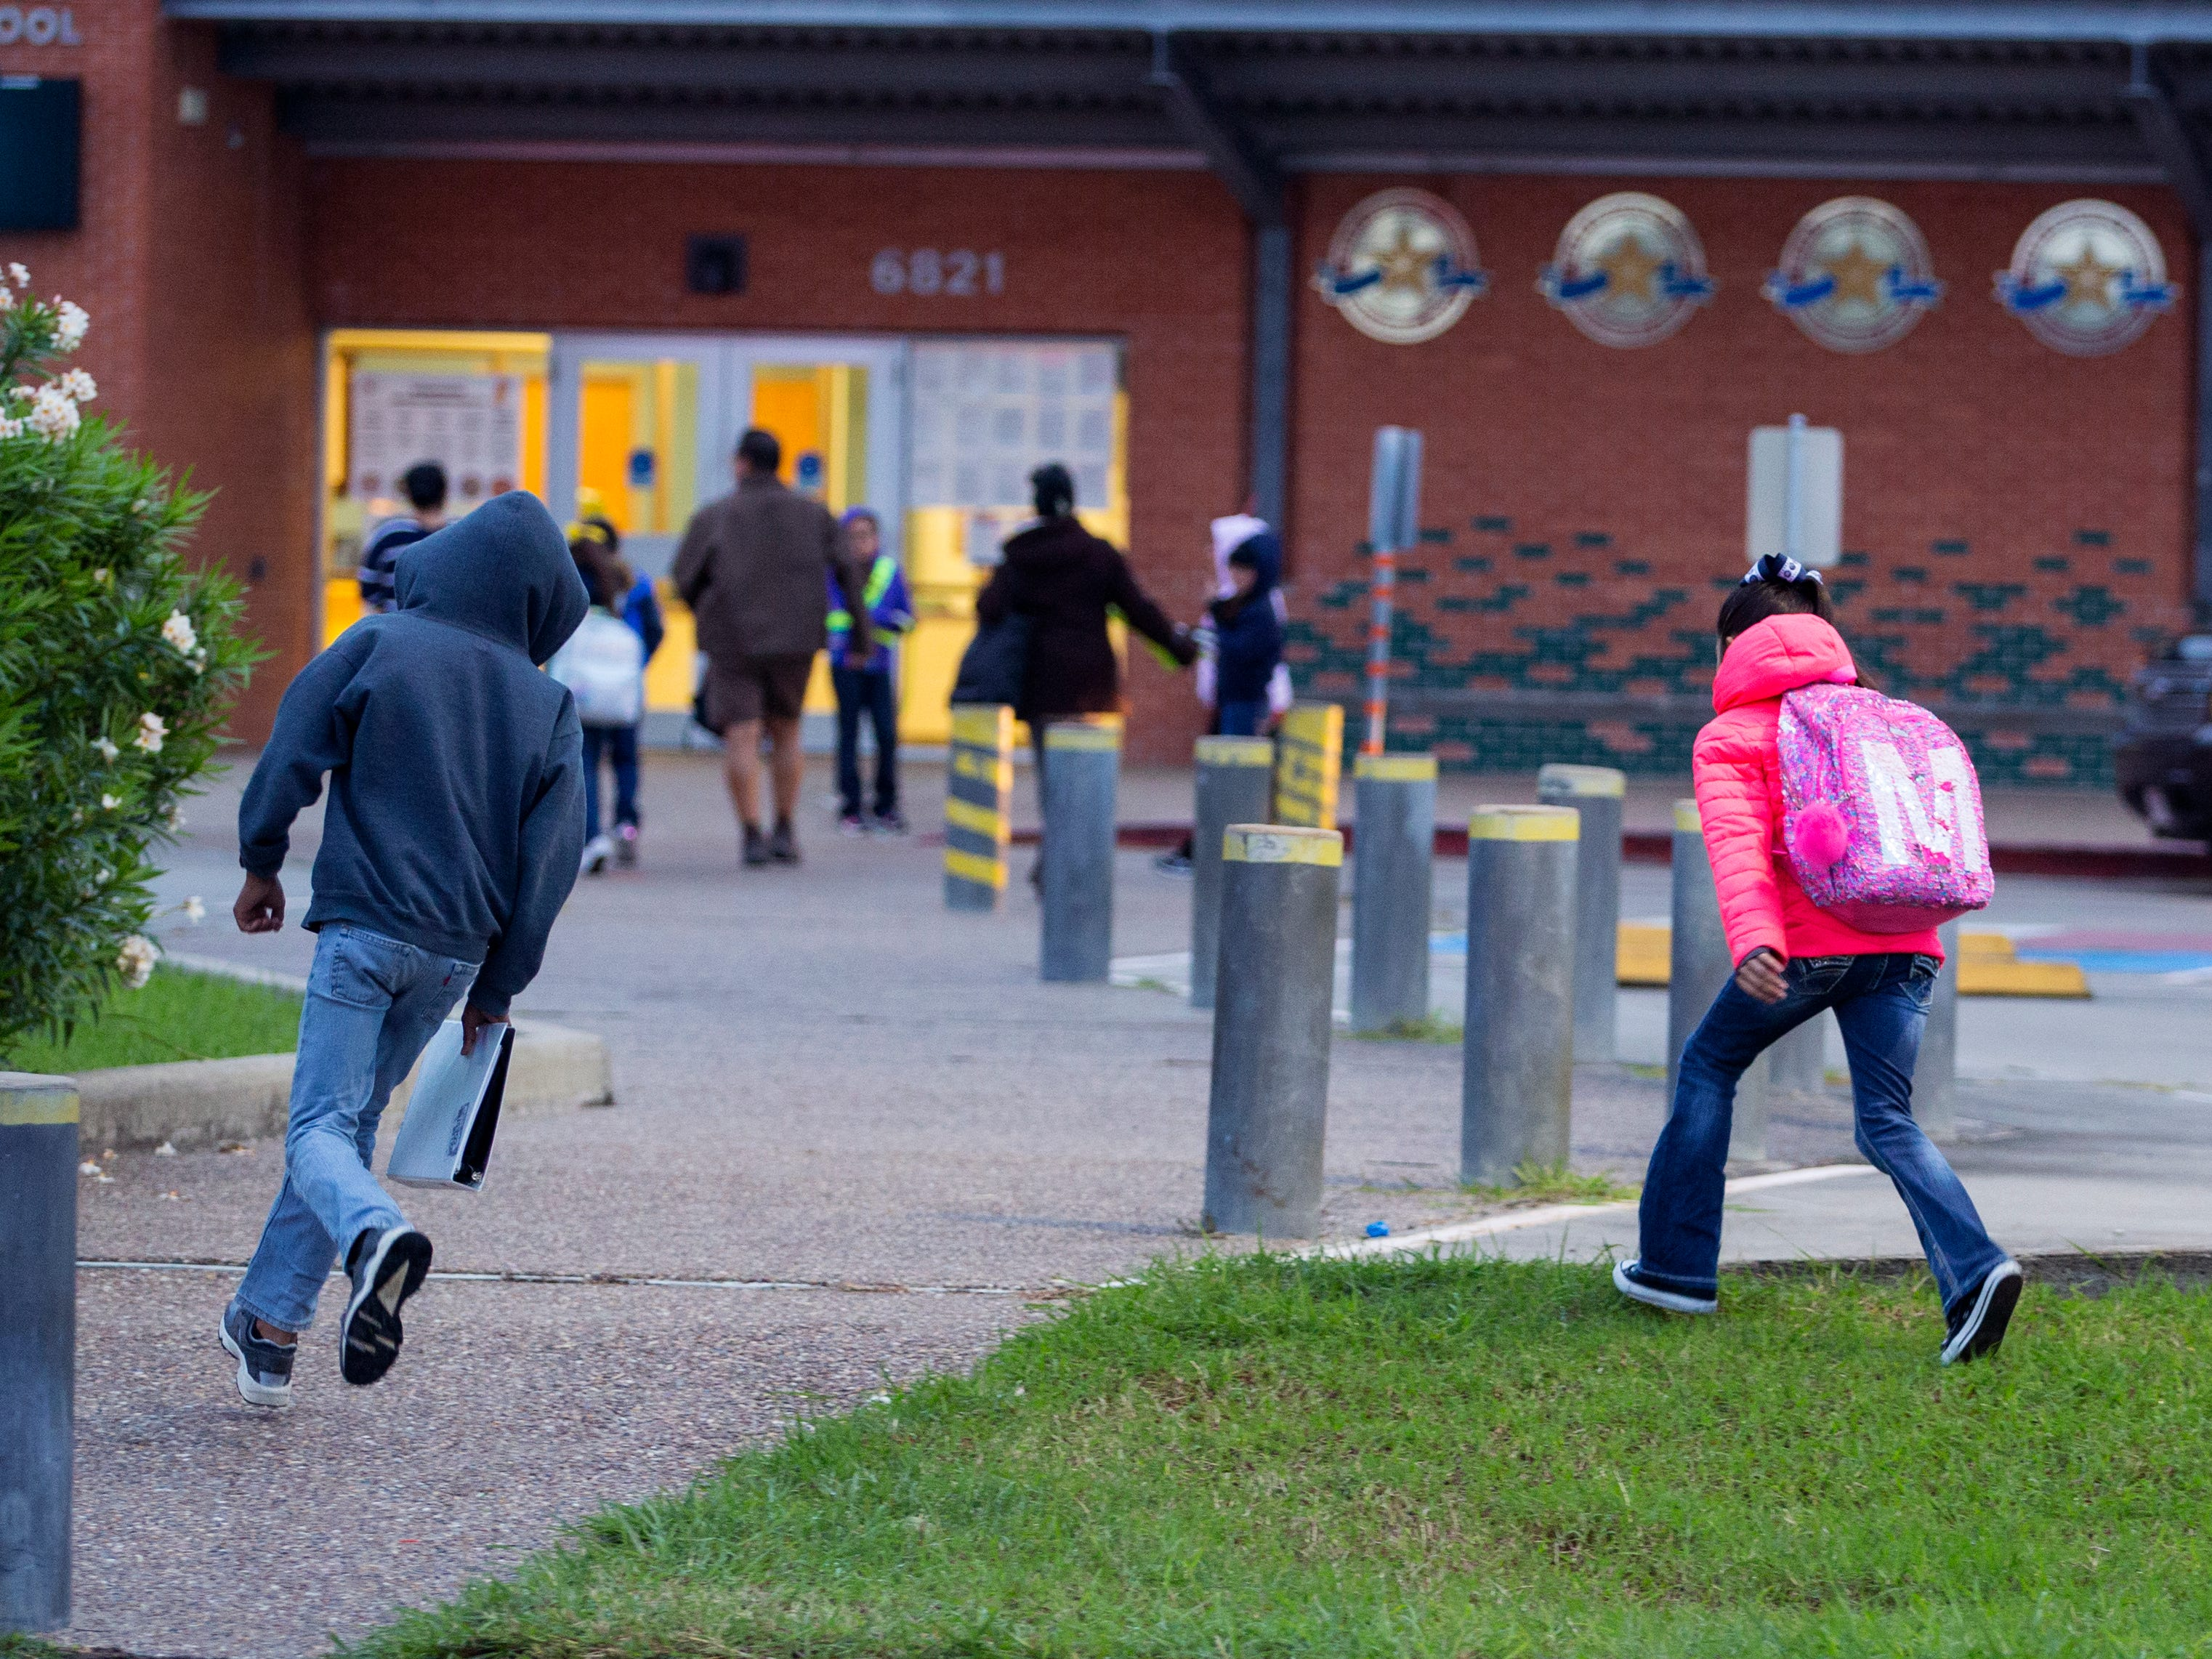 Kids run to school to get out of the cold at Dawson Elementary School on Tuesday, October 16, 2018. The Coastal Bend will continue to see isolated showers and thunderstorms in the early part of the week and get slightly warmer toward the weekend.